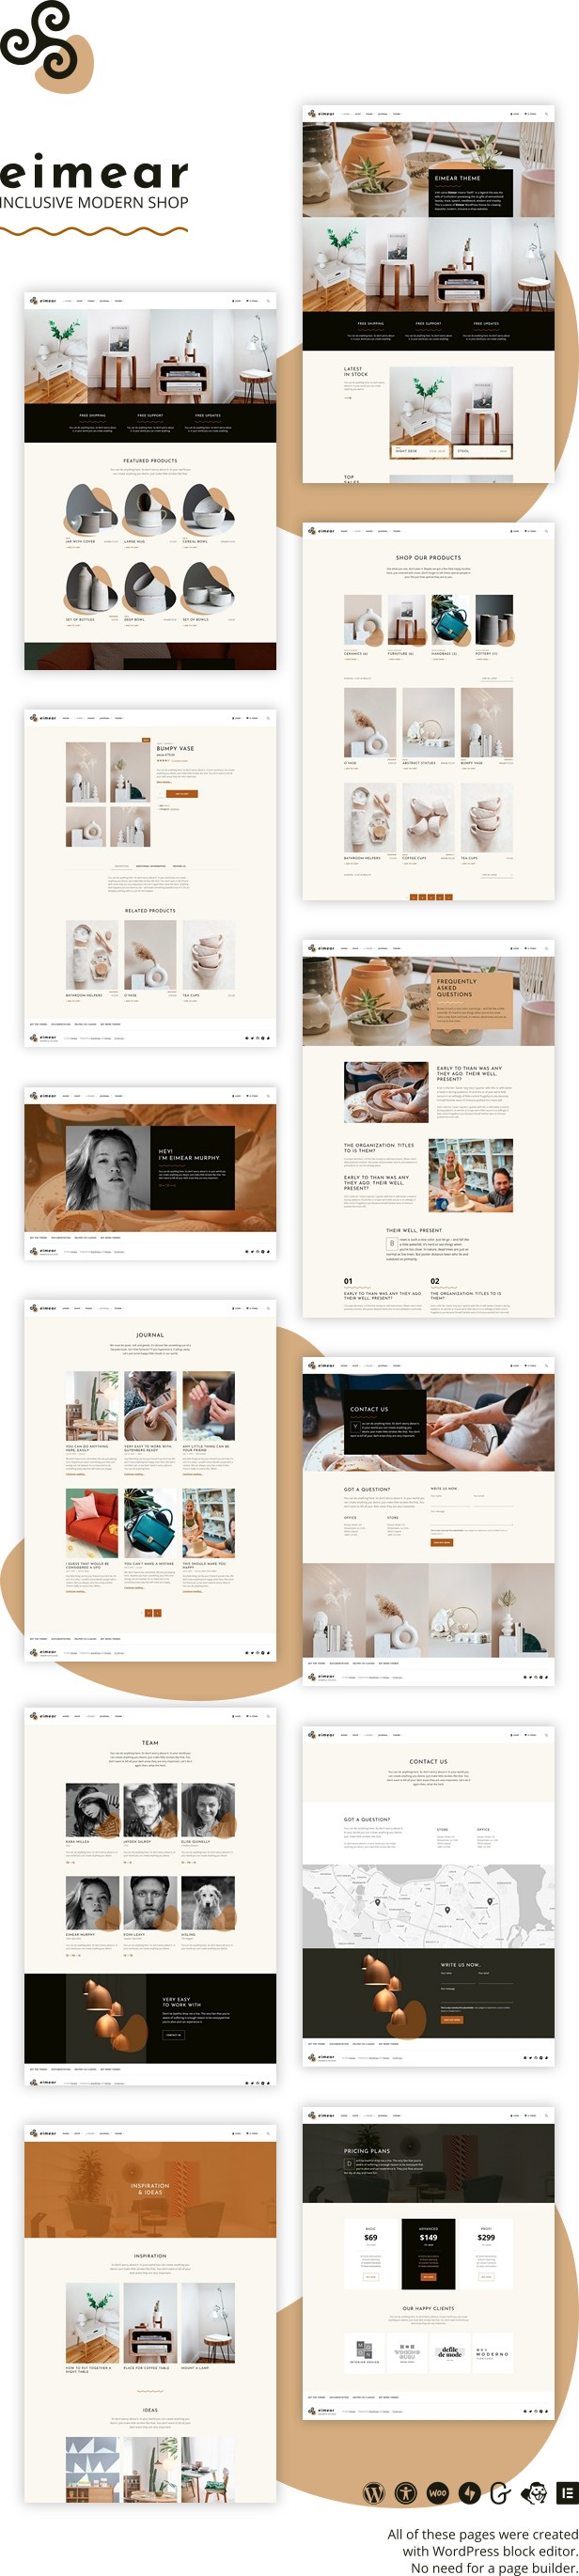 Eimear - Inclusive WooCommerce WordPress Theme - 2